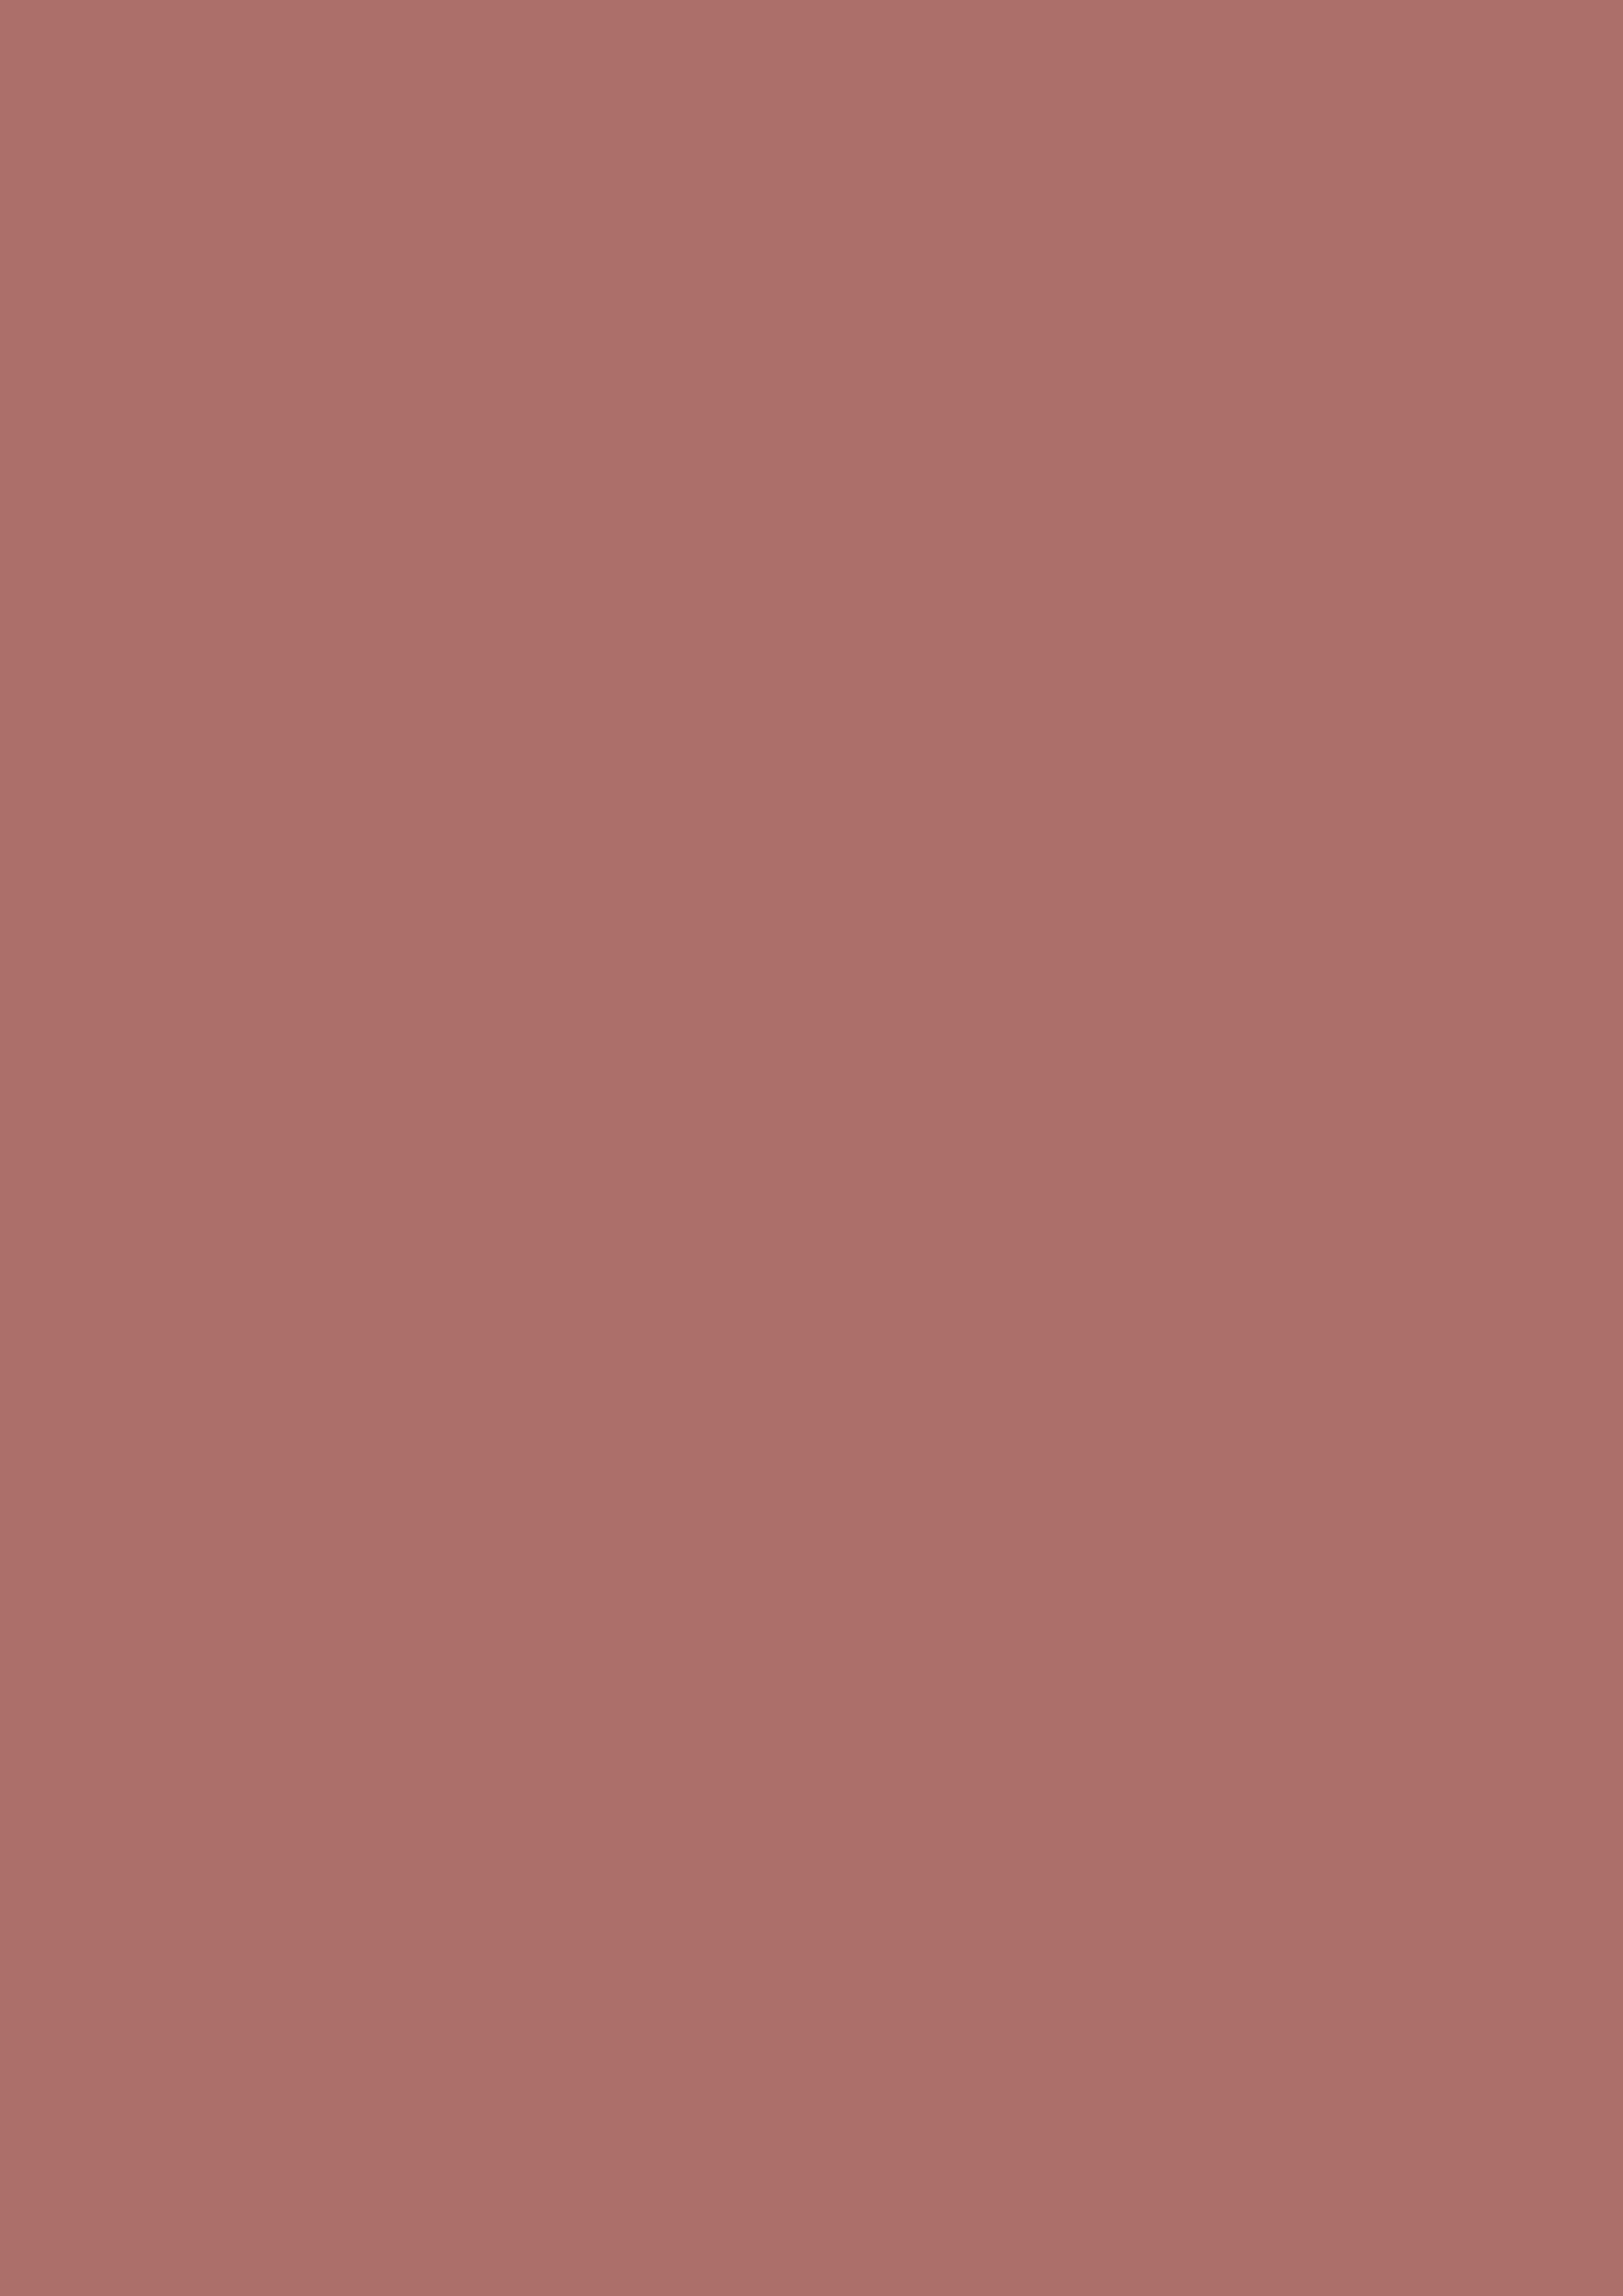 2480x3508 Copper Penny Solid Color Background